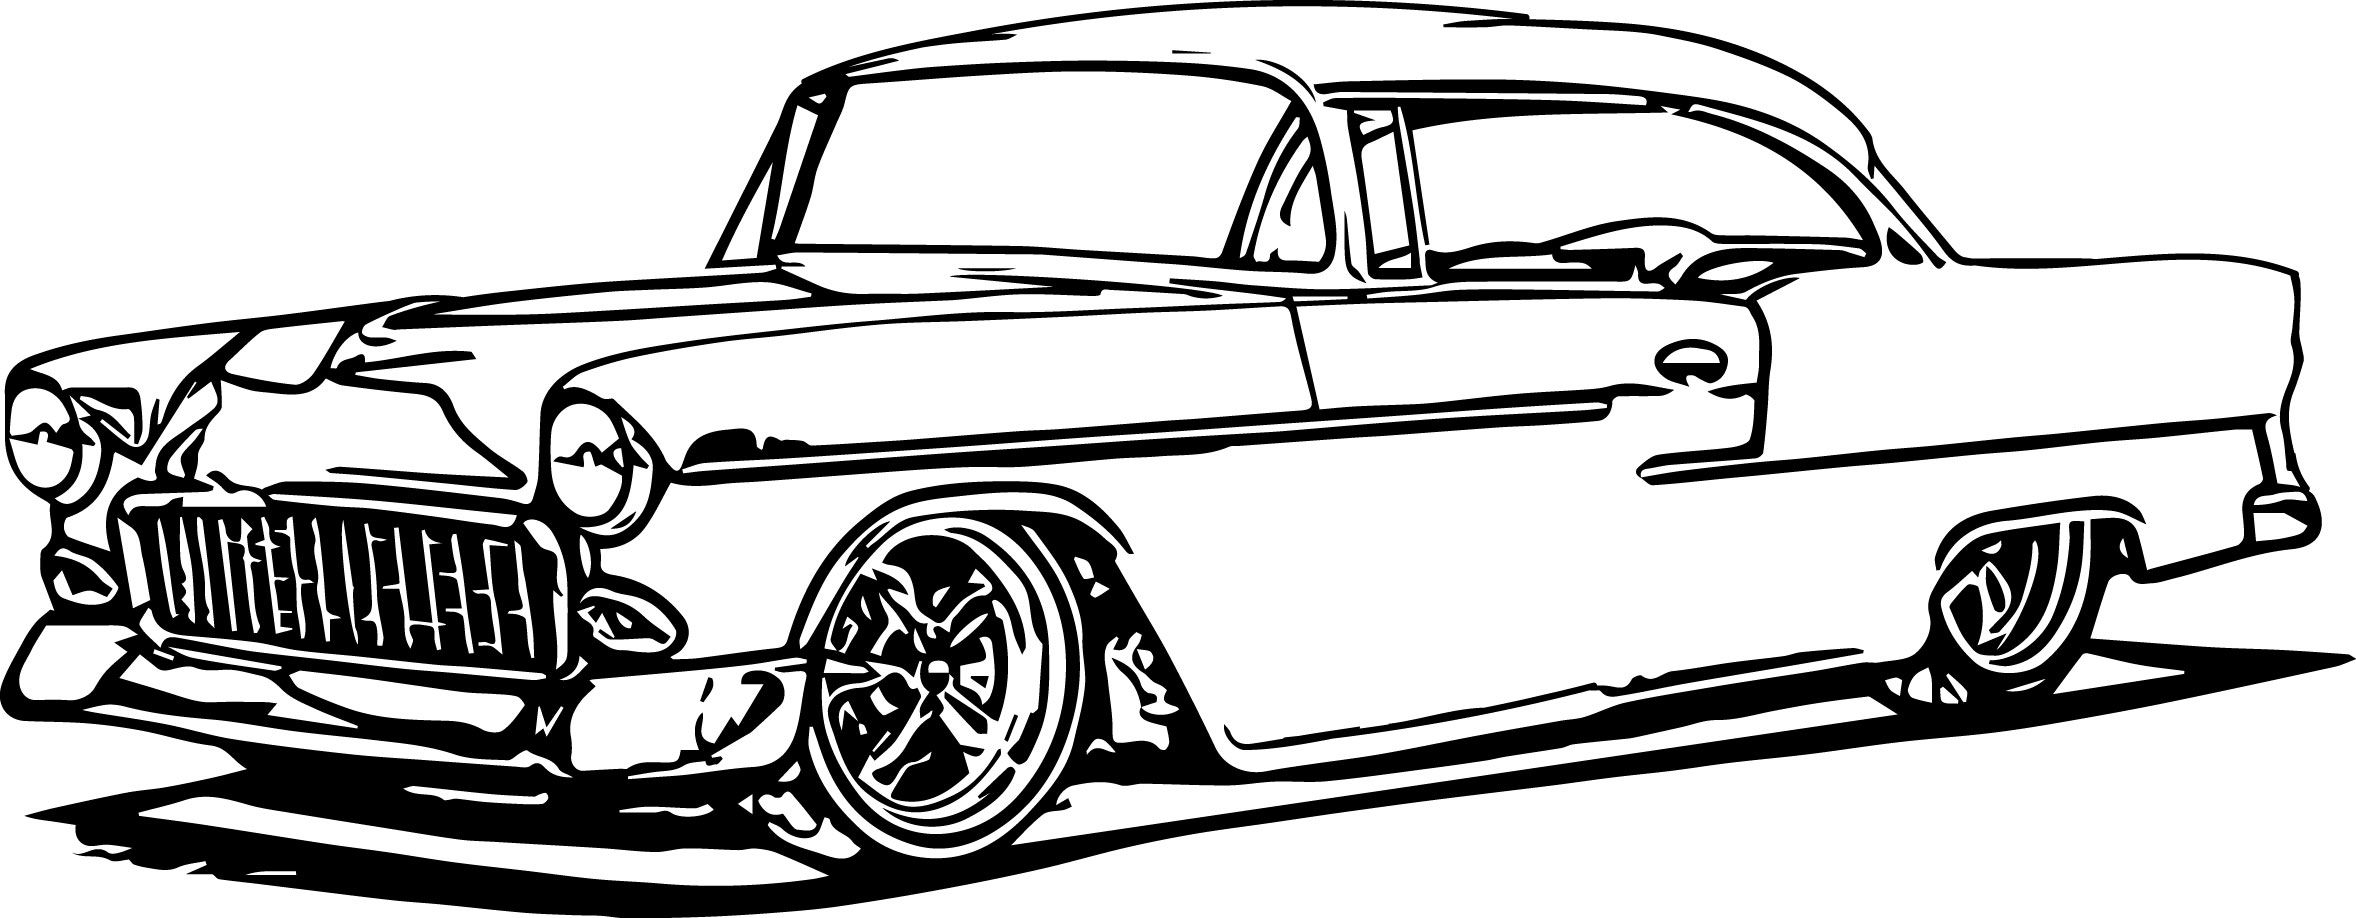 Antique Car Coloring Pages Cars Coloring Pages Truck Coloring